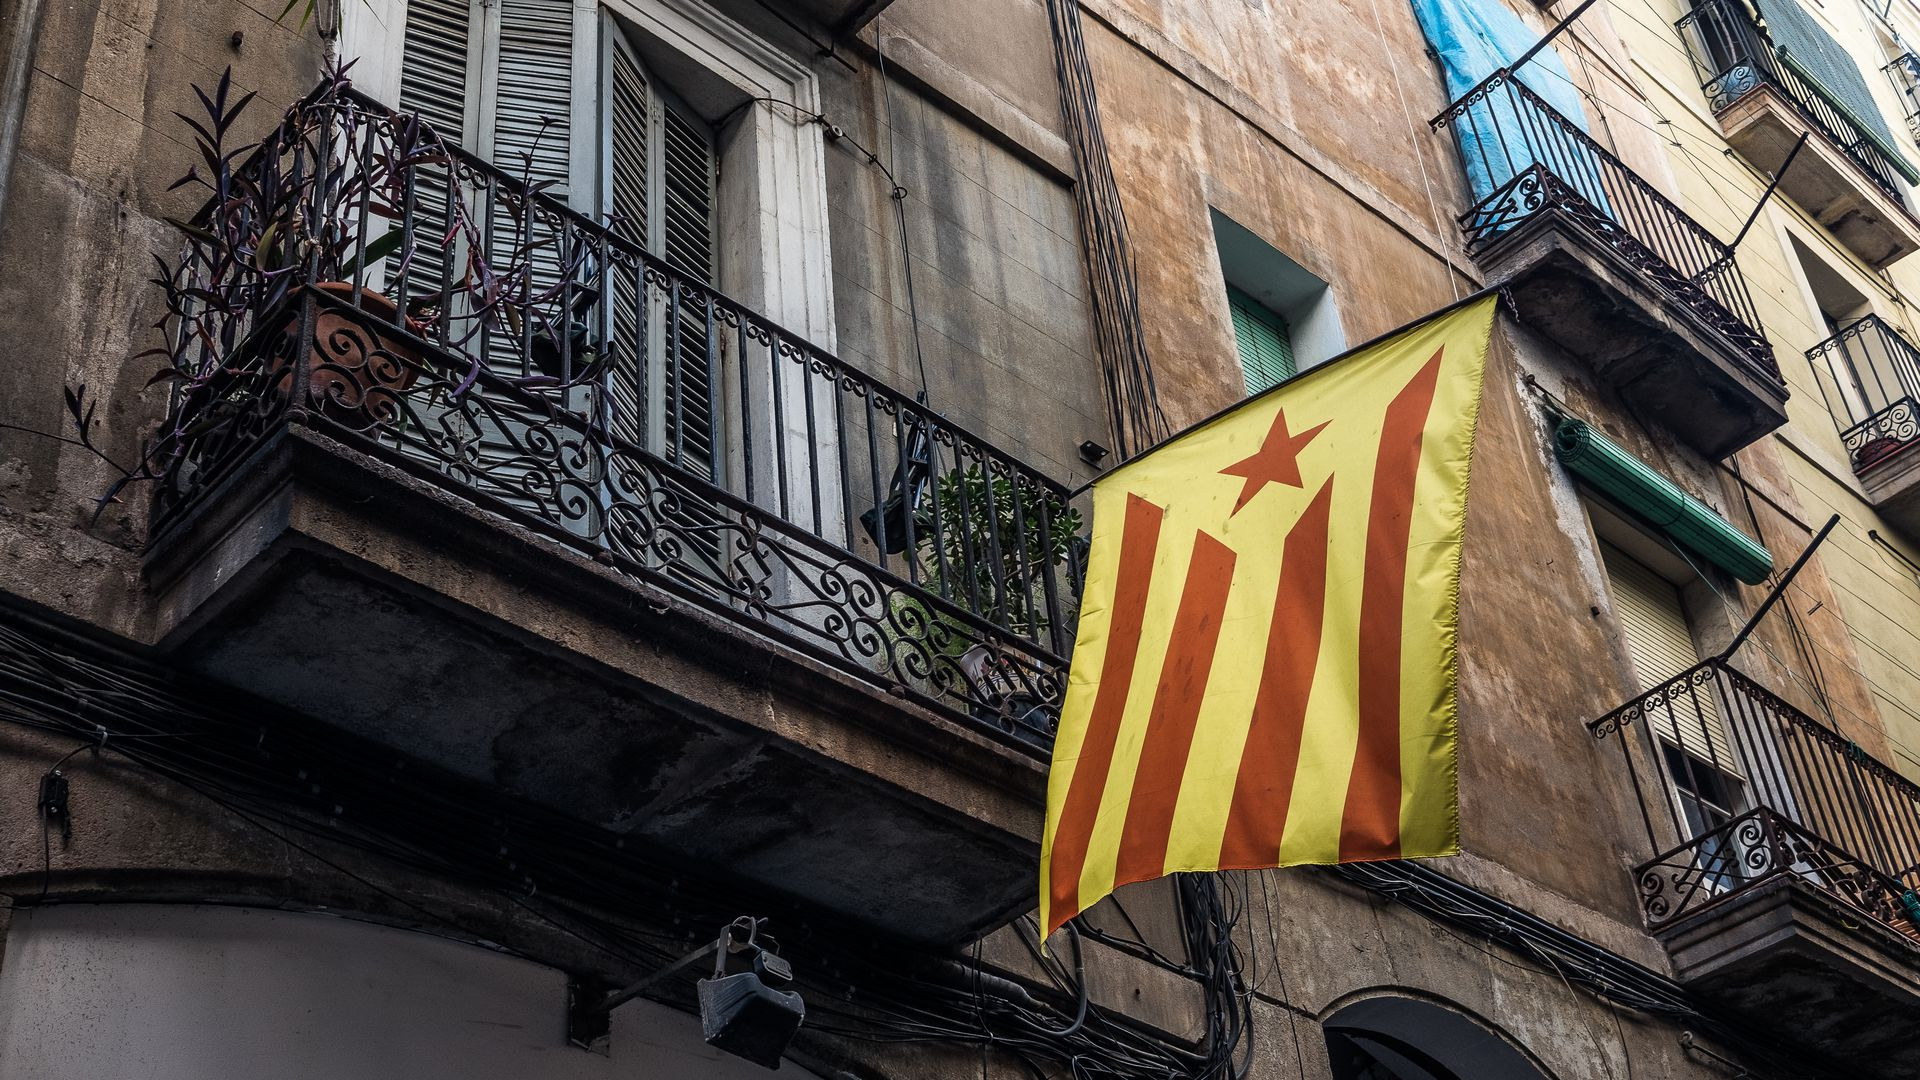 A Catalan independence flag in Barcelona